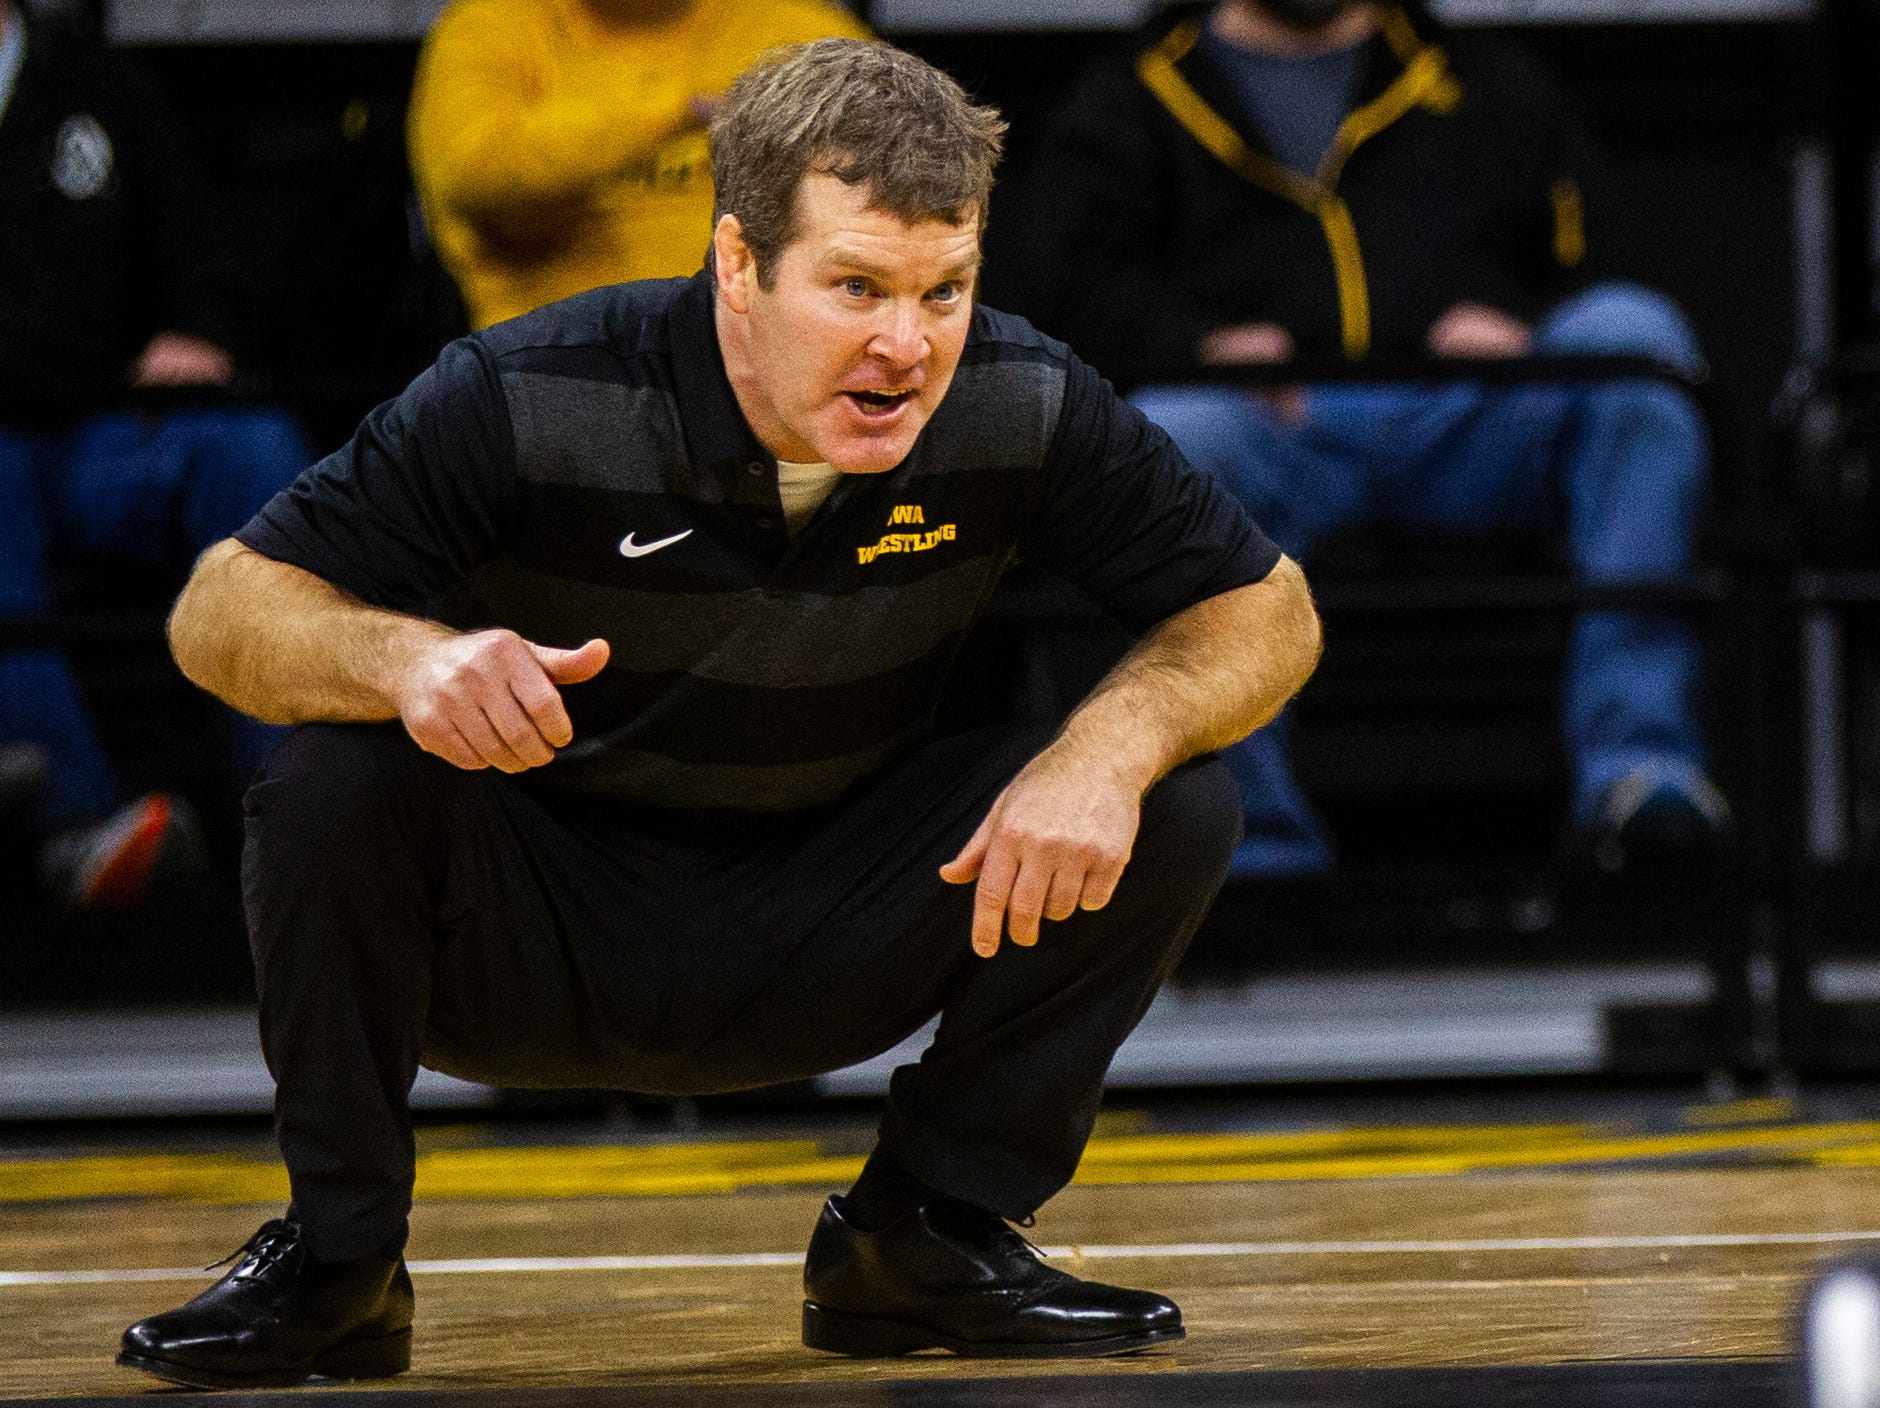 Iowa head coach Tom Brands calls out during a NCAA Cy-Hawk series wrestling dual on Saturday, Dec. 1, 2018, at Carver-Hawkeye Arena in Iowa City.